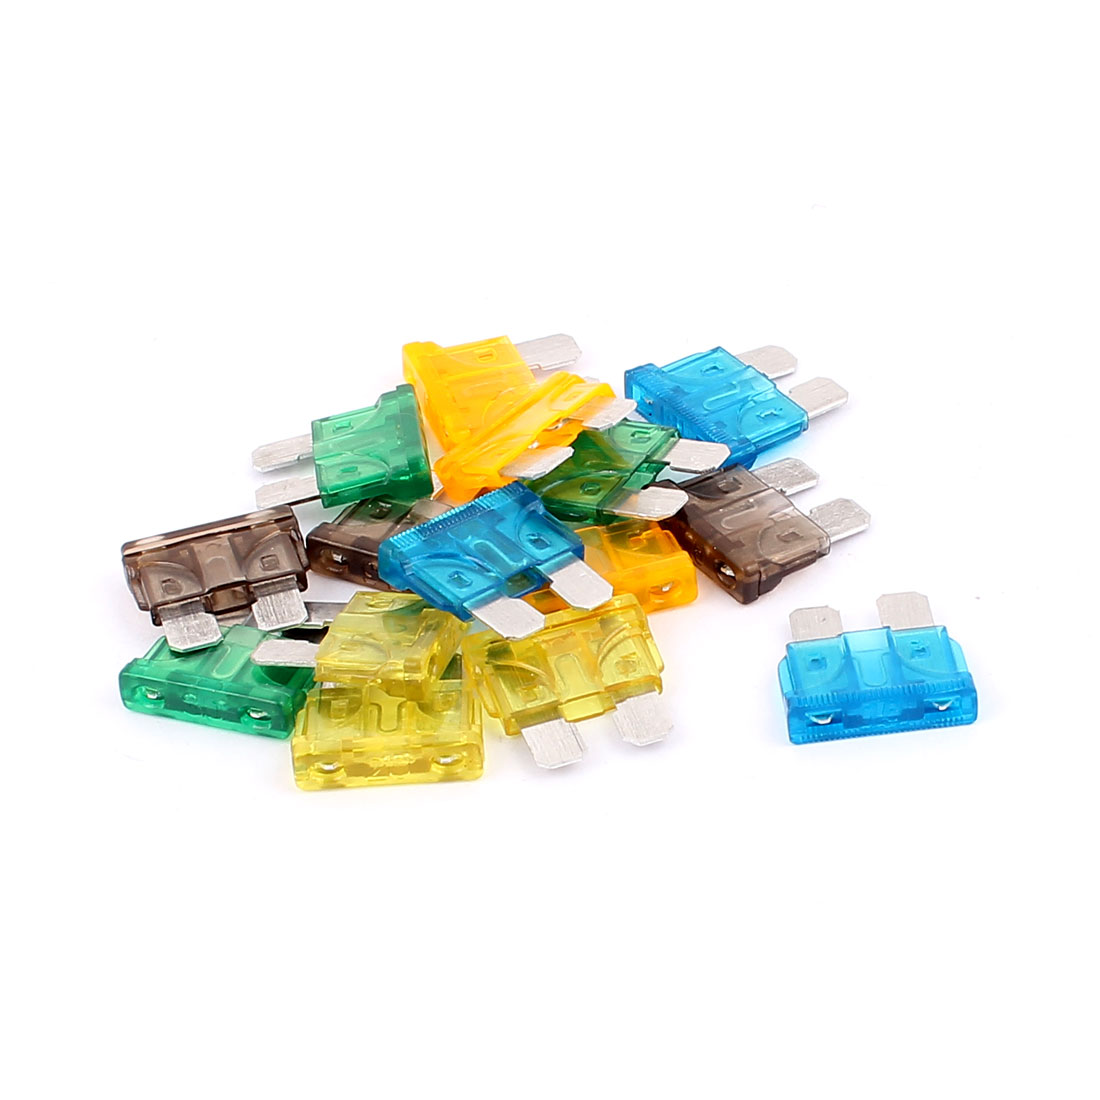 15pcs Assorted Color Plastic Case ATC ATO Mini Blade Fuses for Car Caravan Truck Vehicle